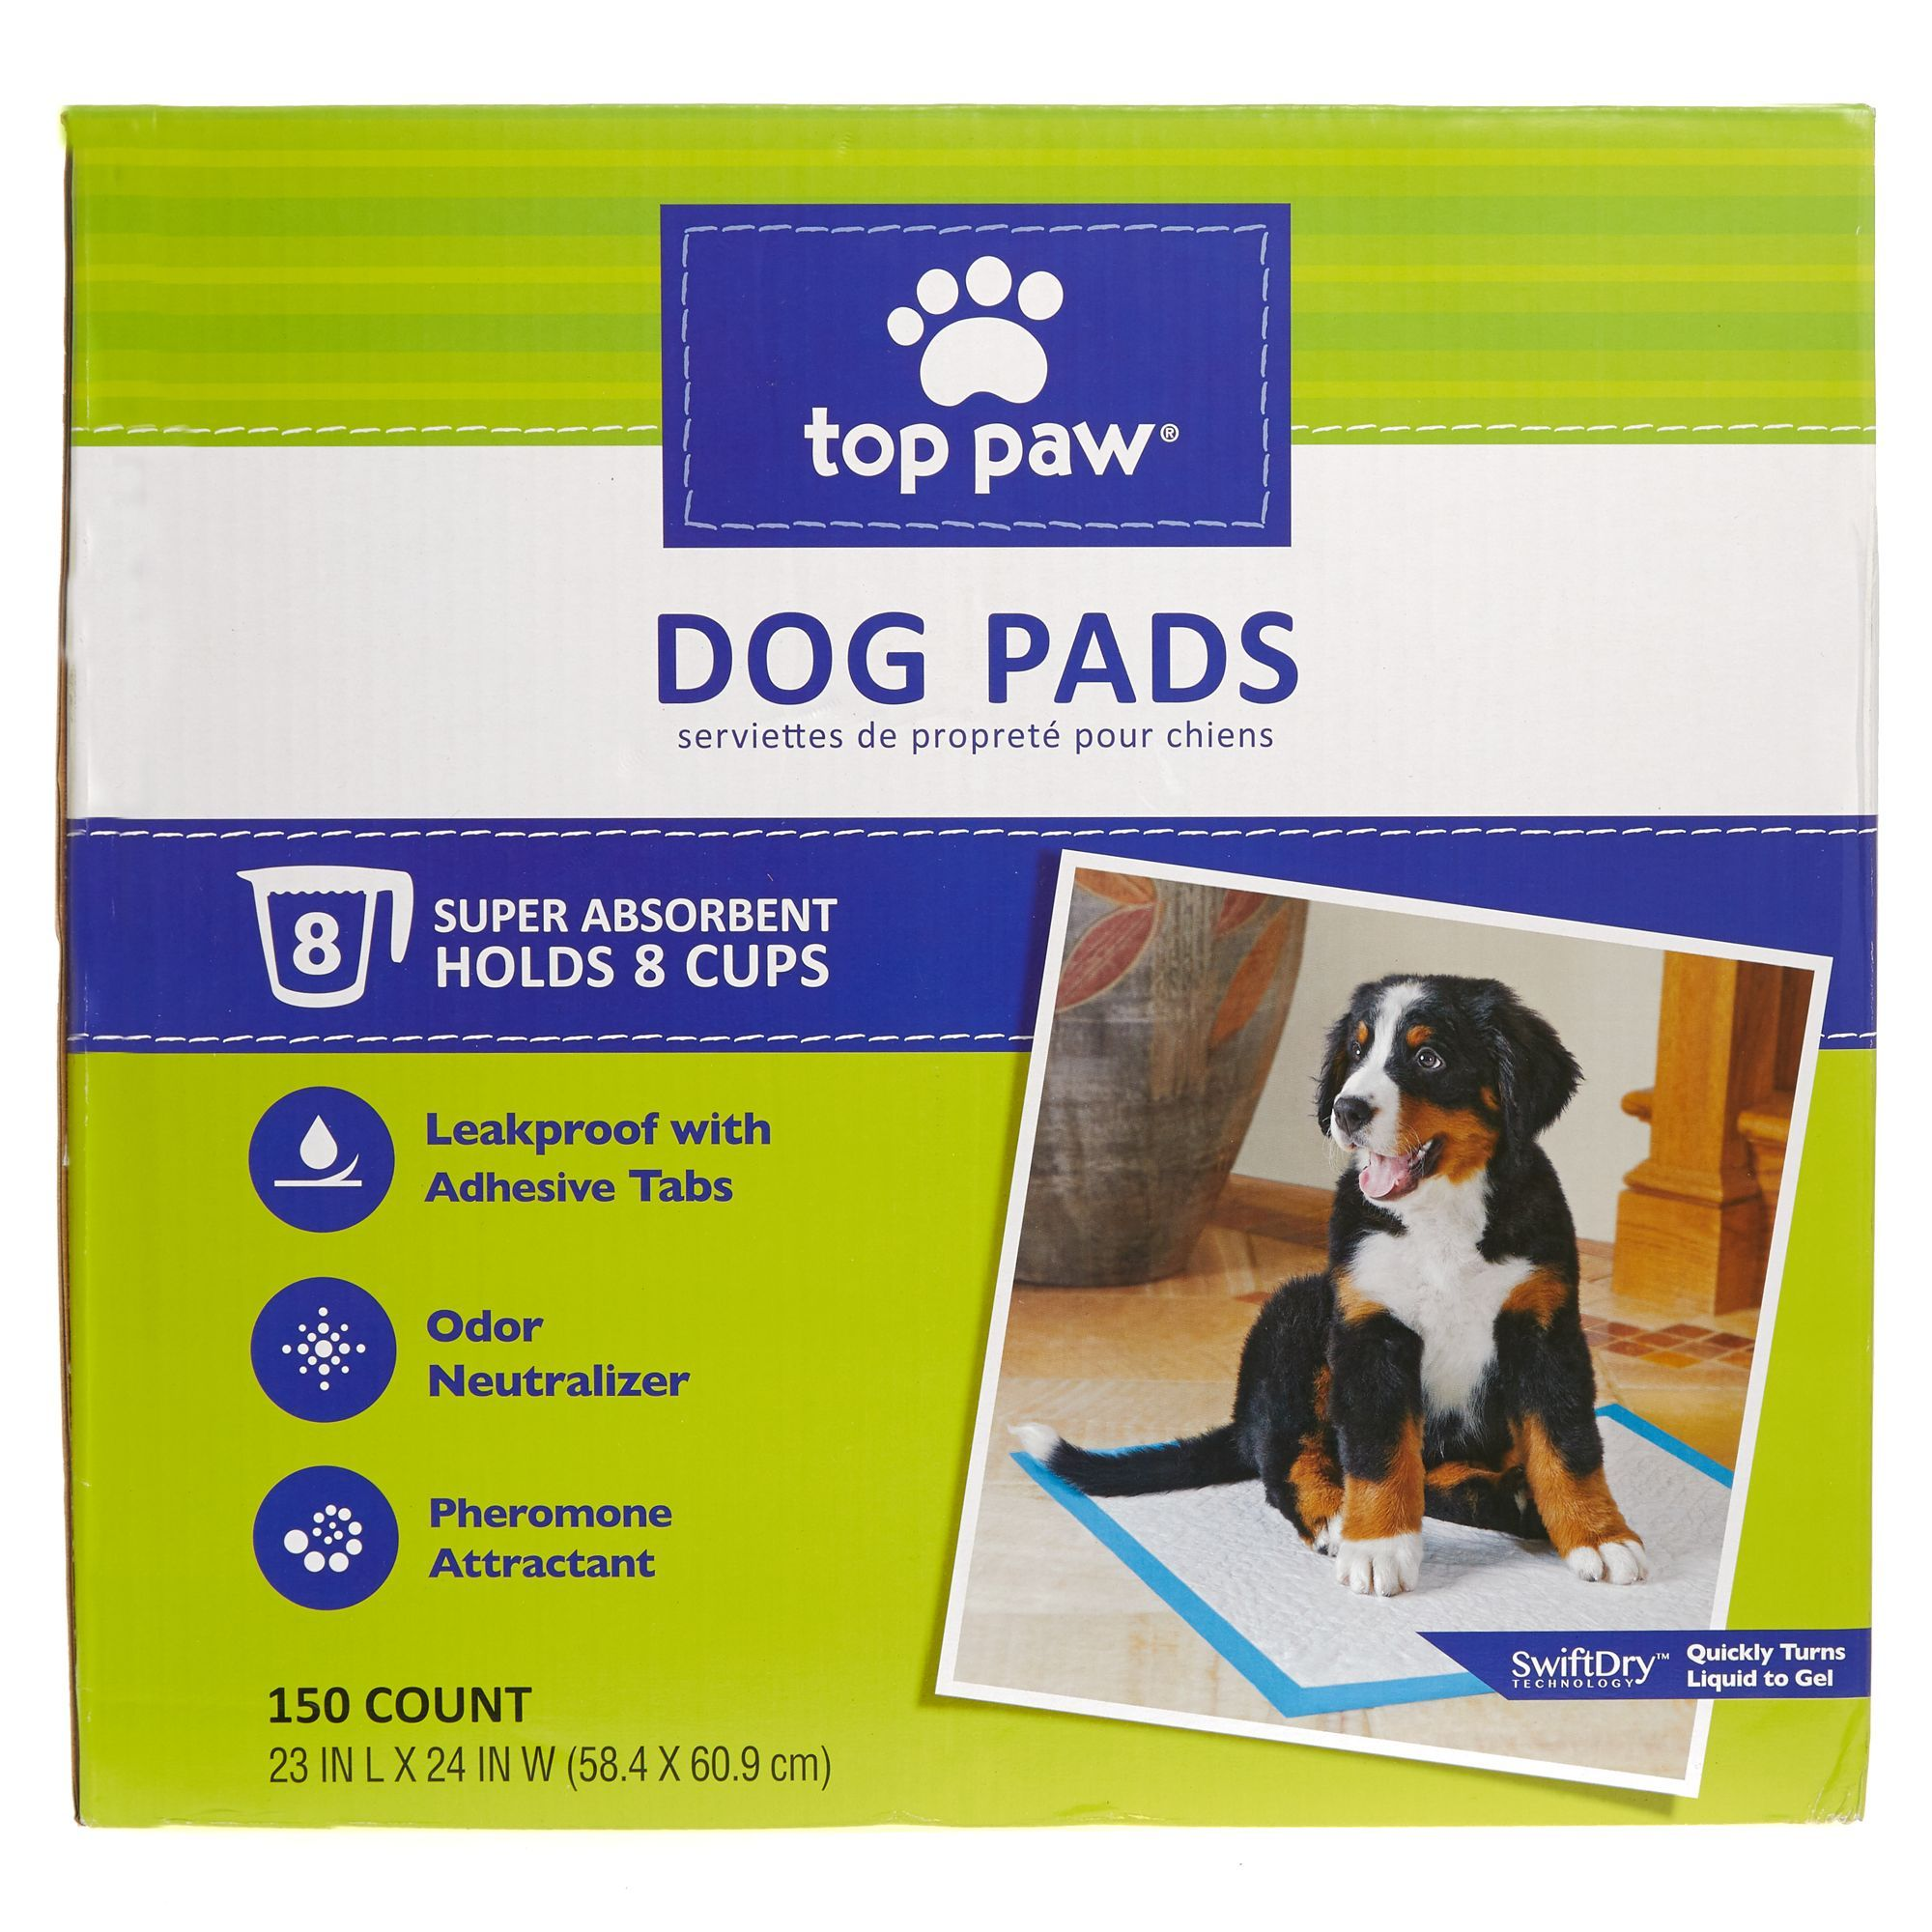 Top Paw Dog Pads In 2020 Dog Pads Dogs Dog Training